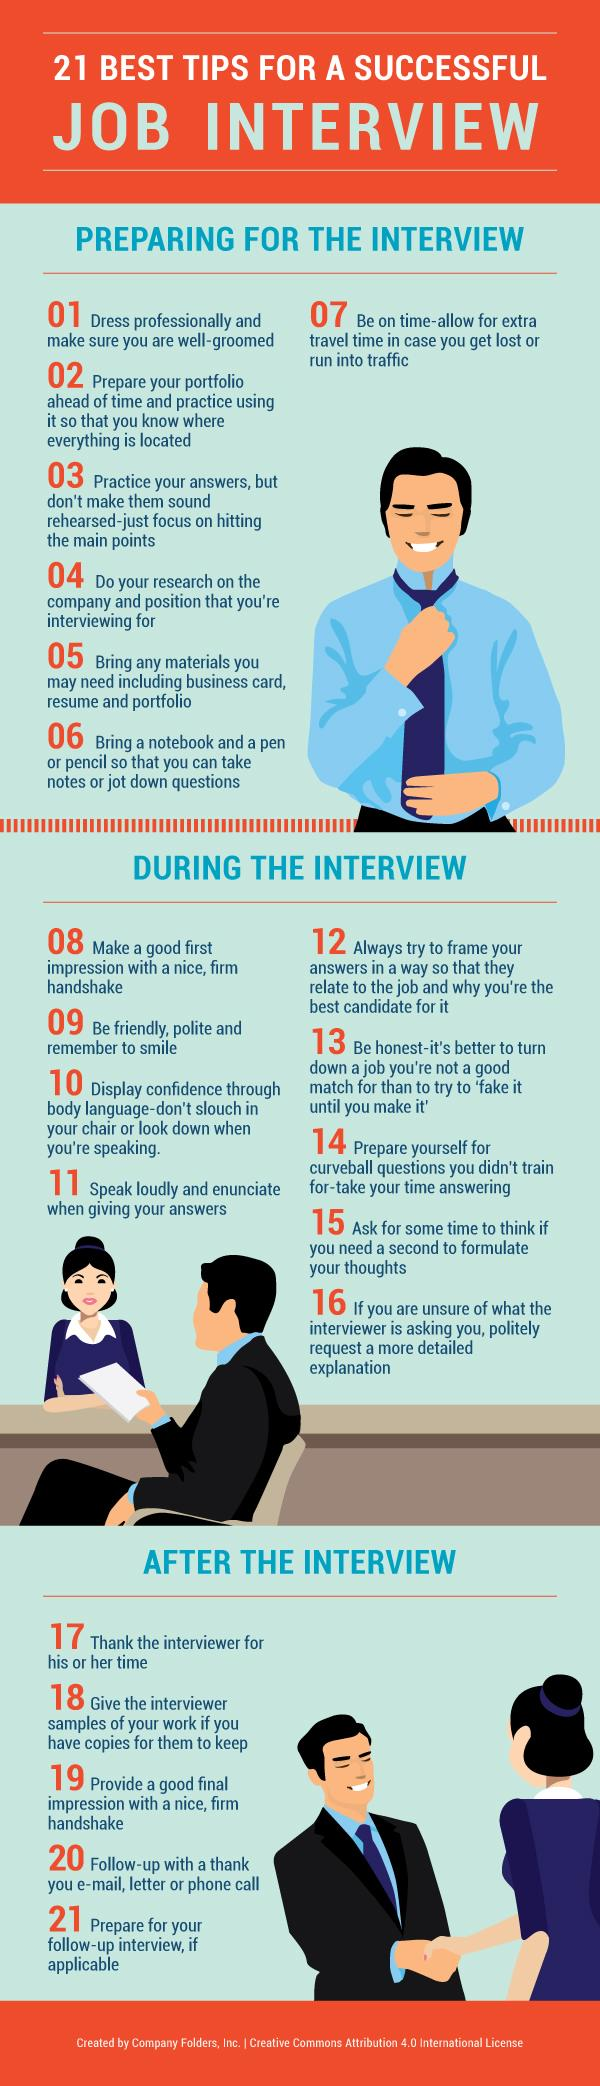 21 Tips for A Successful Job Interview